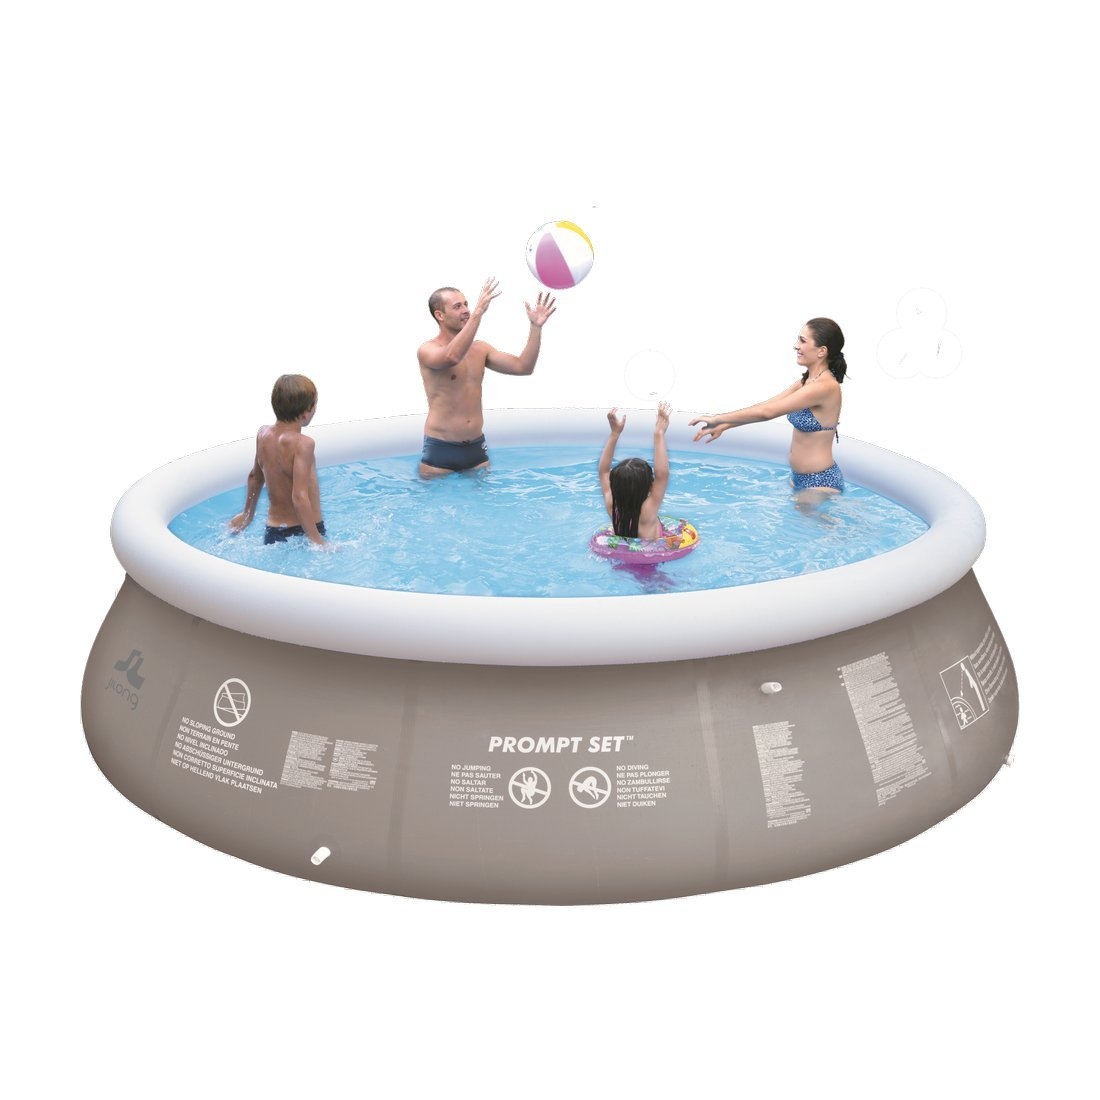 JILONG JL017447ND -P17 - Piscina Inflable: Amazon.es: Jardín